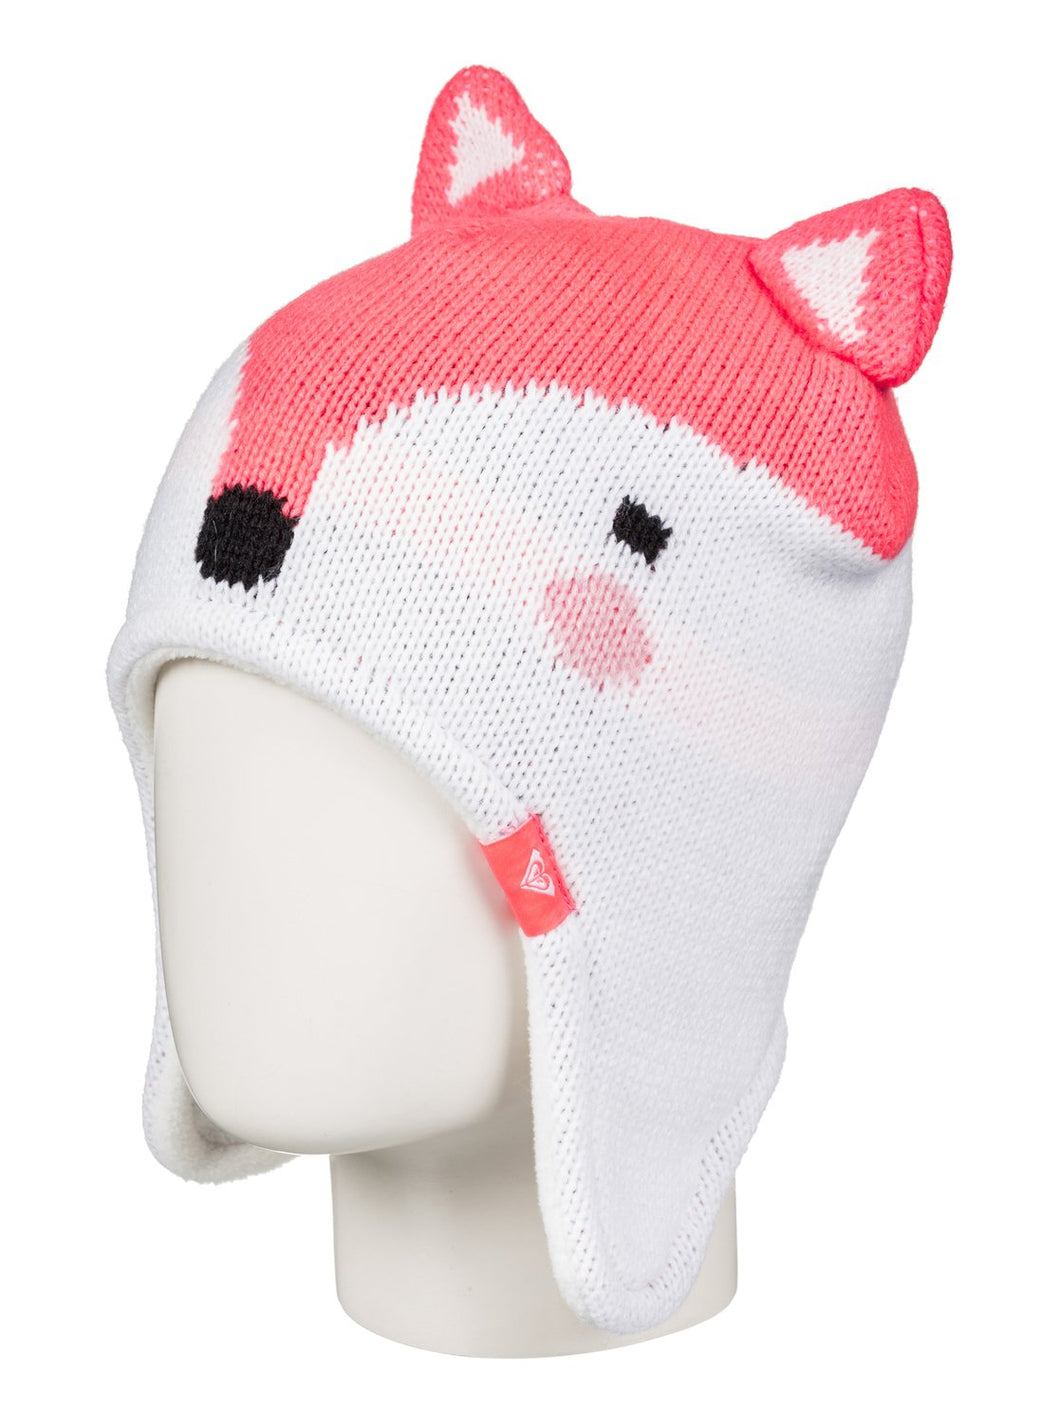 Roxy Fox Teenie Beanie - Girls'